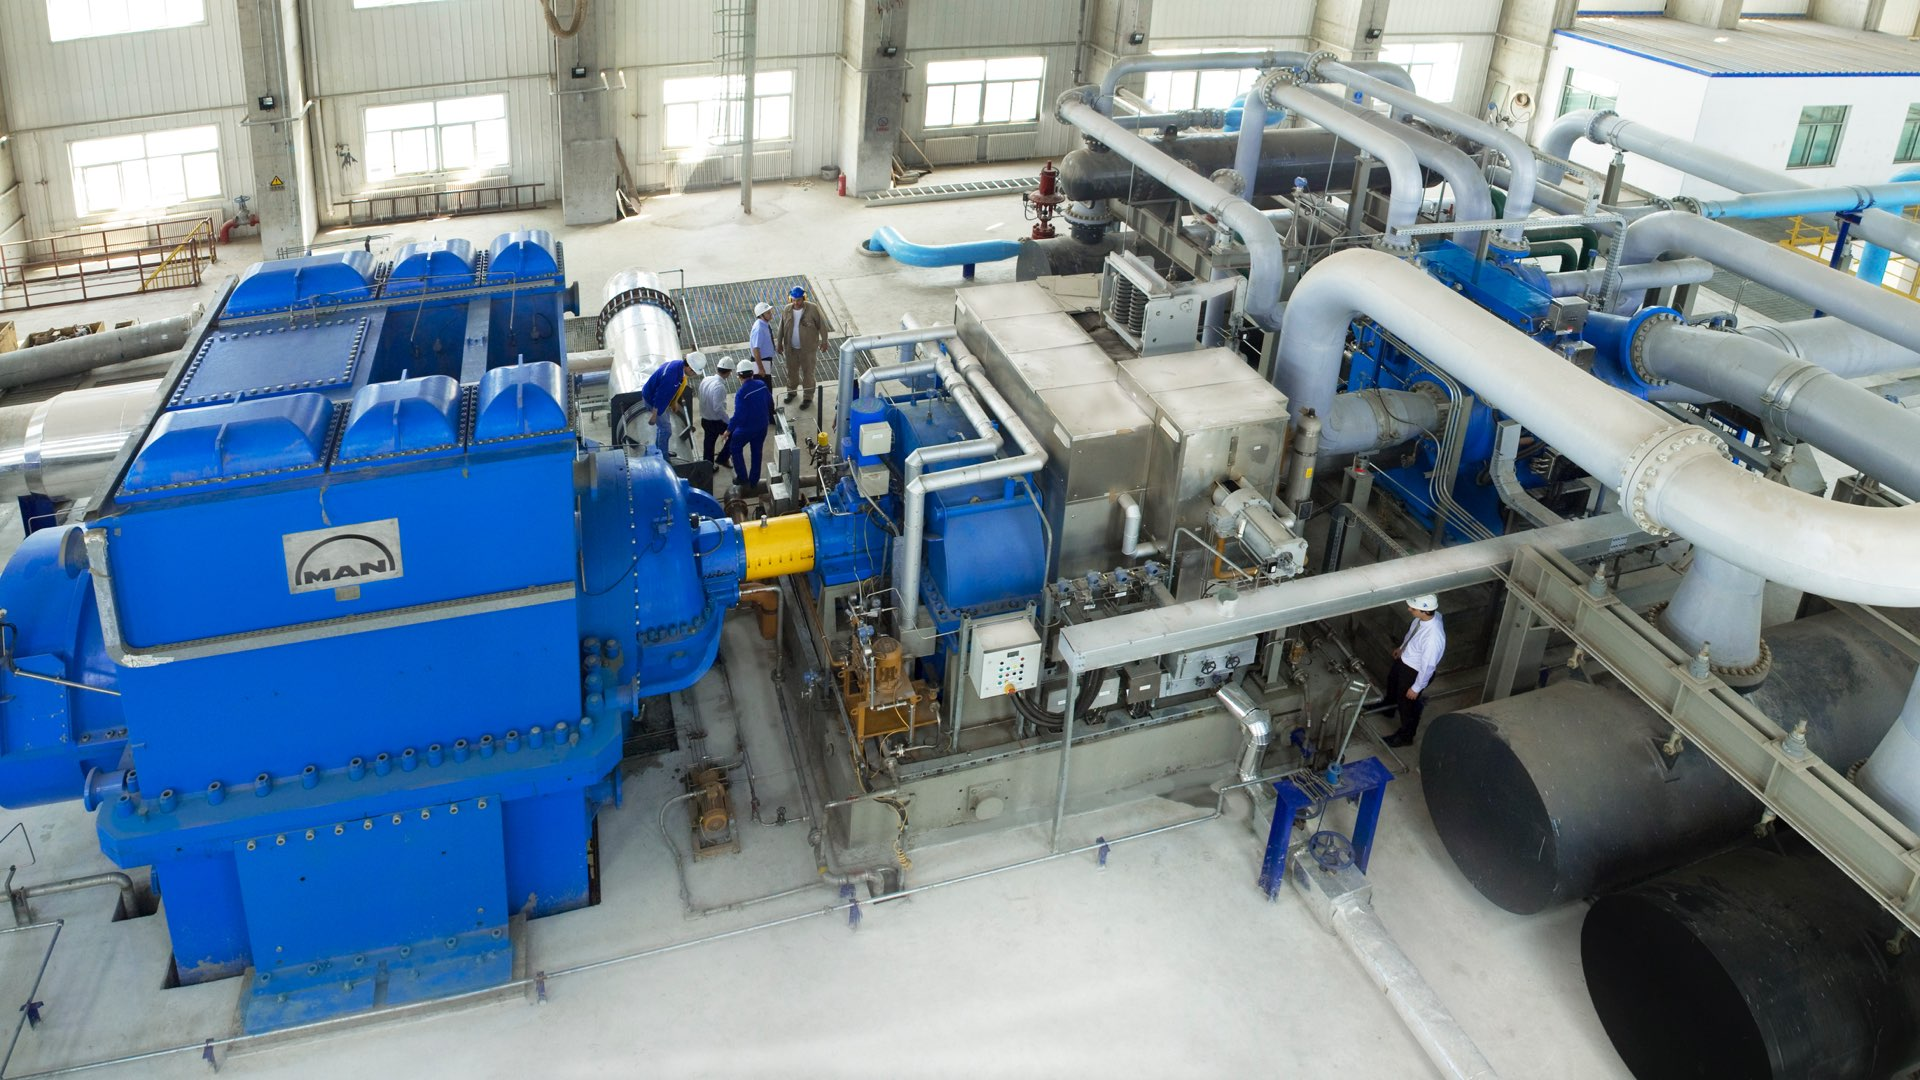 Steam turbine installed in Bautou, China